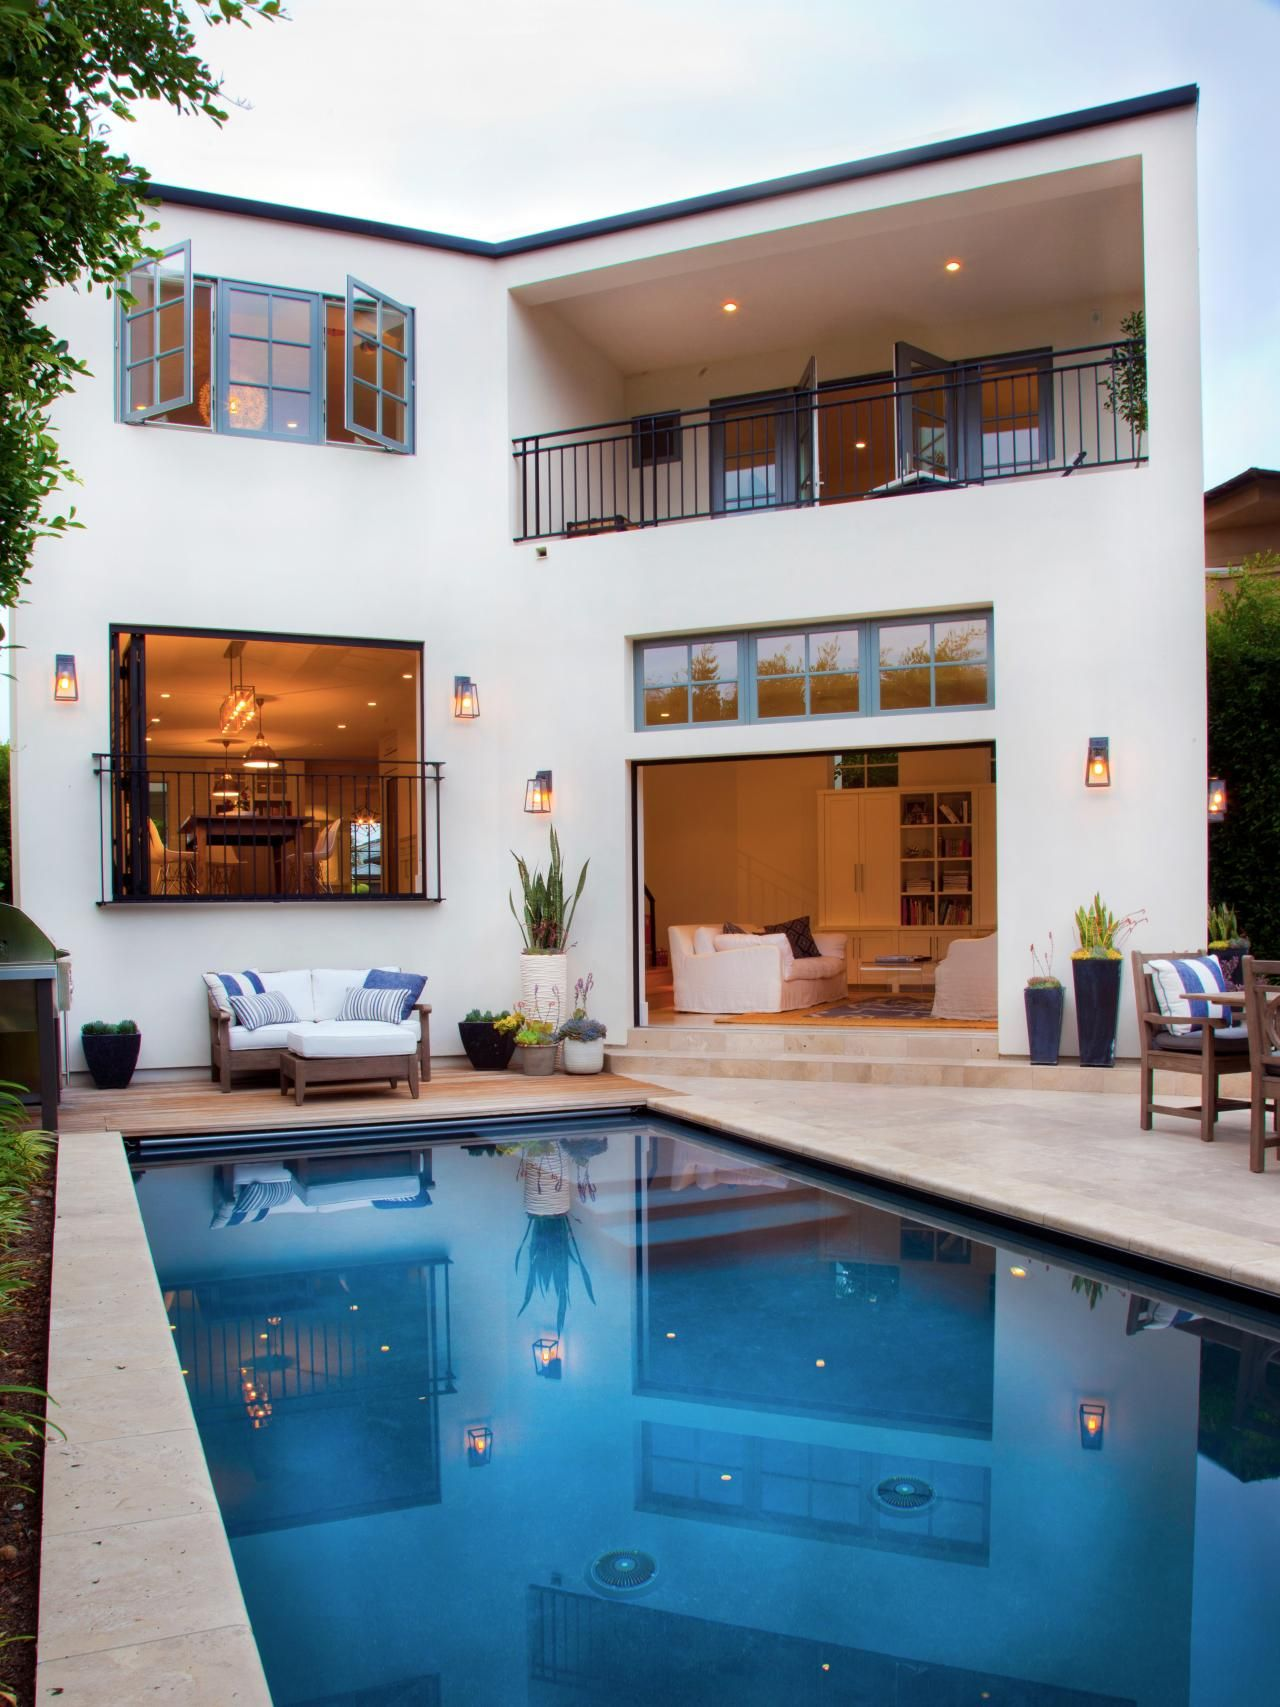 Small Swimming Pool Ideas And Pictures Small Swimming Pools Small Pool Design Swimming Pool Designs